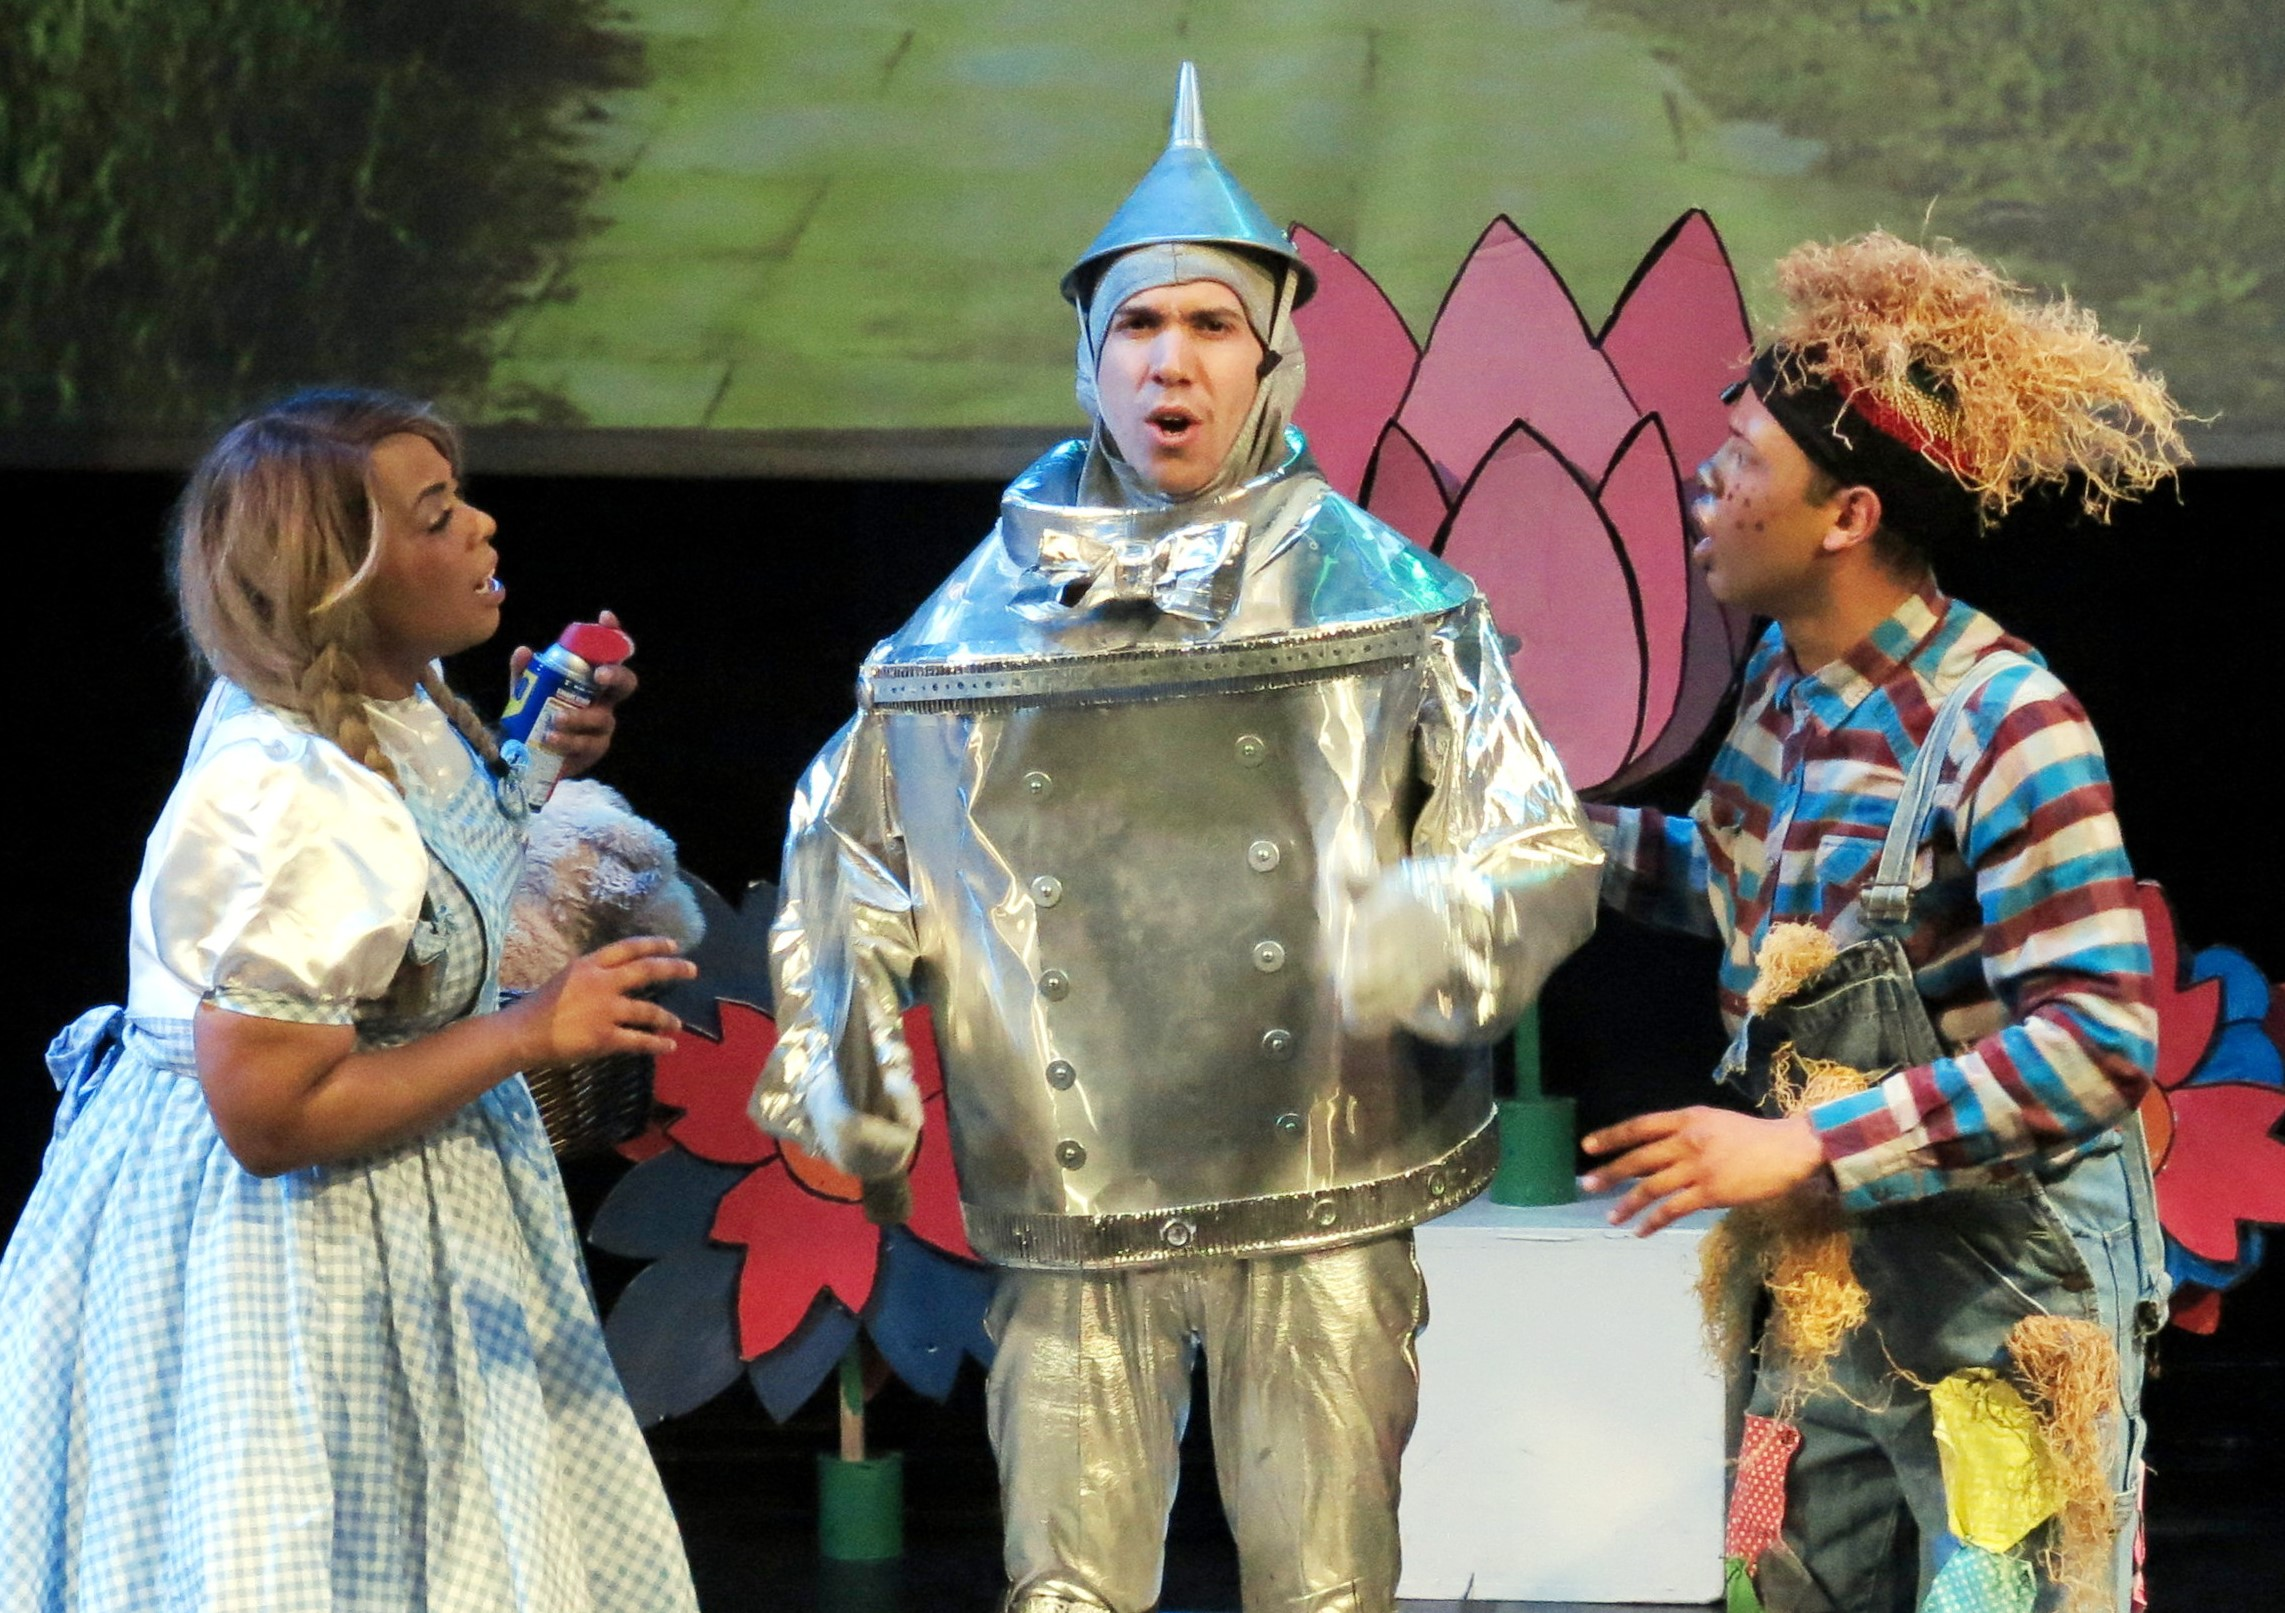 From left: Taylor-Rey Rivera as Dorothy, Ben Harburg as Tin-Man, and Derrick Montalvo as Scarecrow. Photograph by Jonathan Slaff. Banner photo by Rina Kopalla